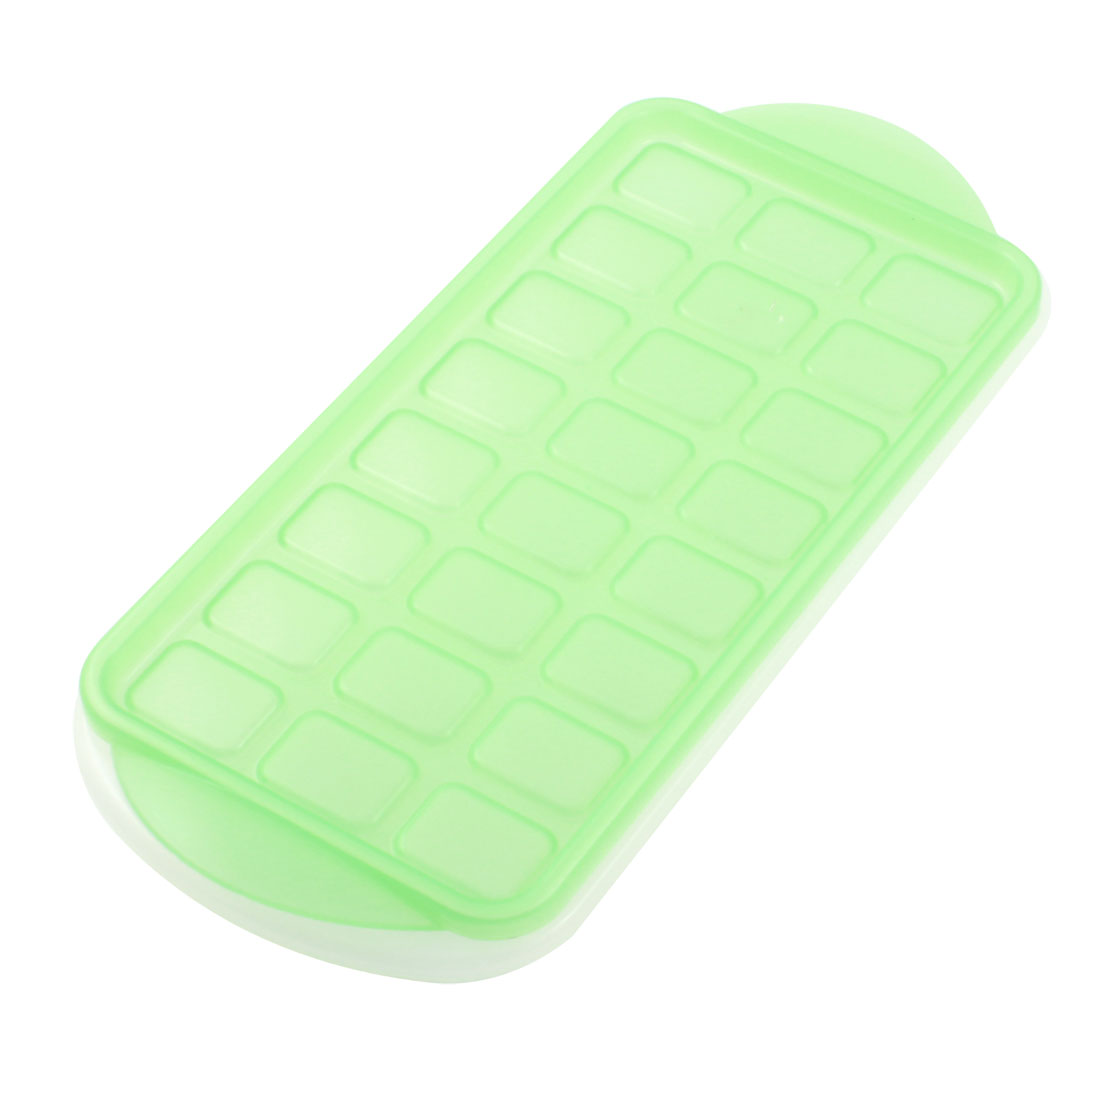 Household 24 Slots White Plastic Pudding Mould Ice Cube Mold w Green Lid